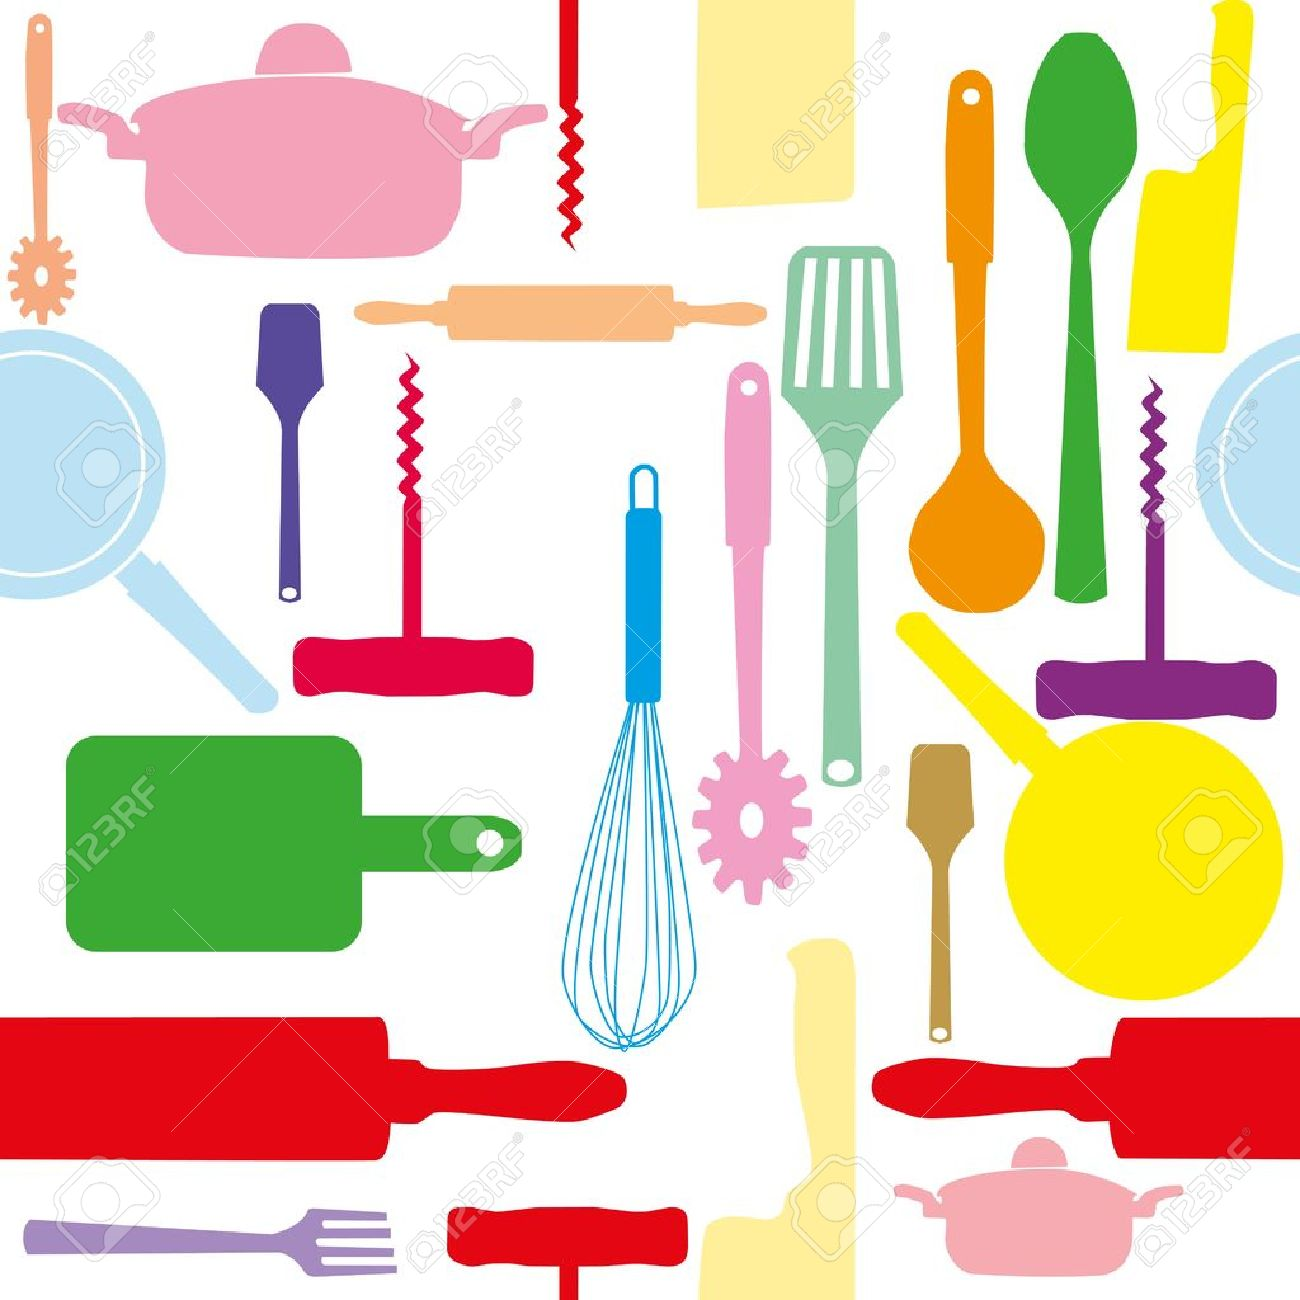 Vector Seamless Pattern Of Kitchen Tools Royalty Free Cliparts Vectors And Stock Illustration Image 12303089